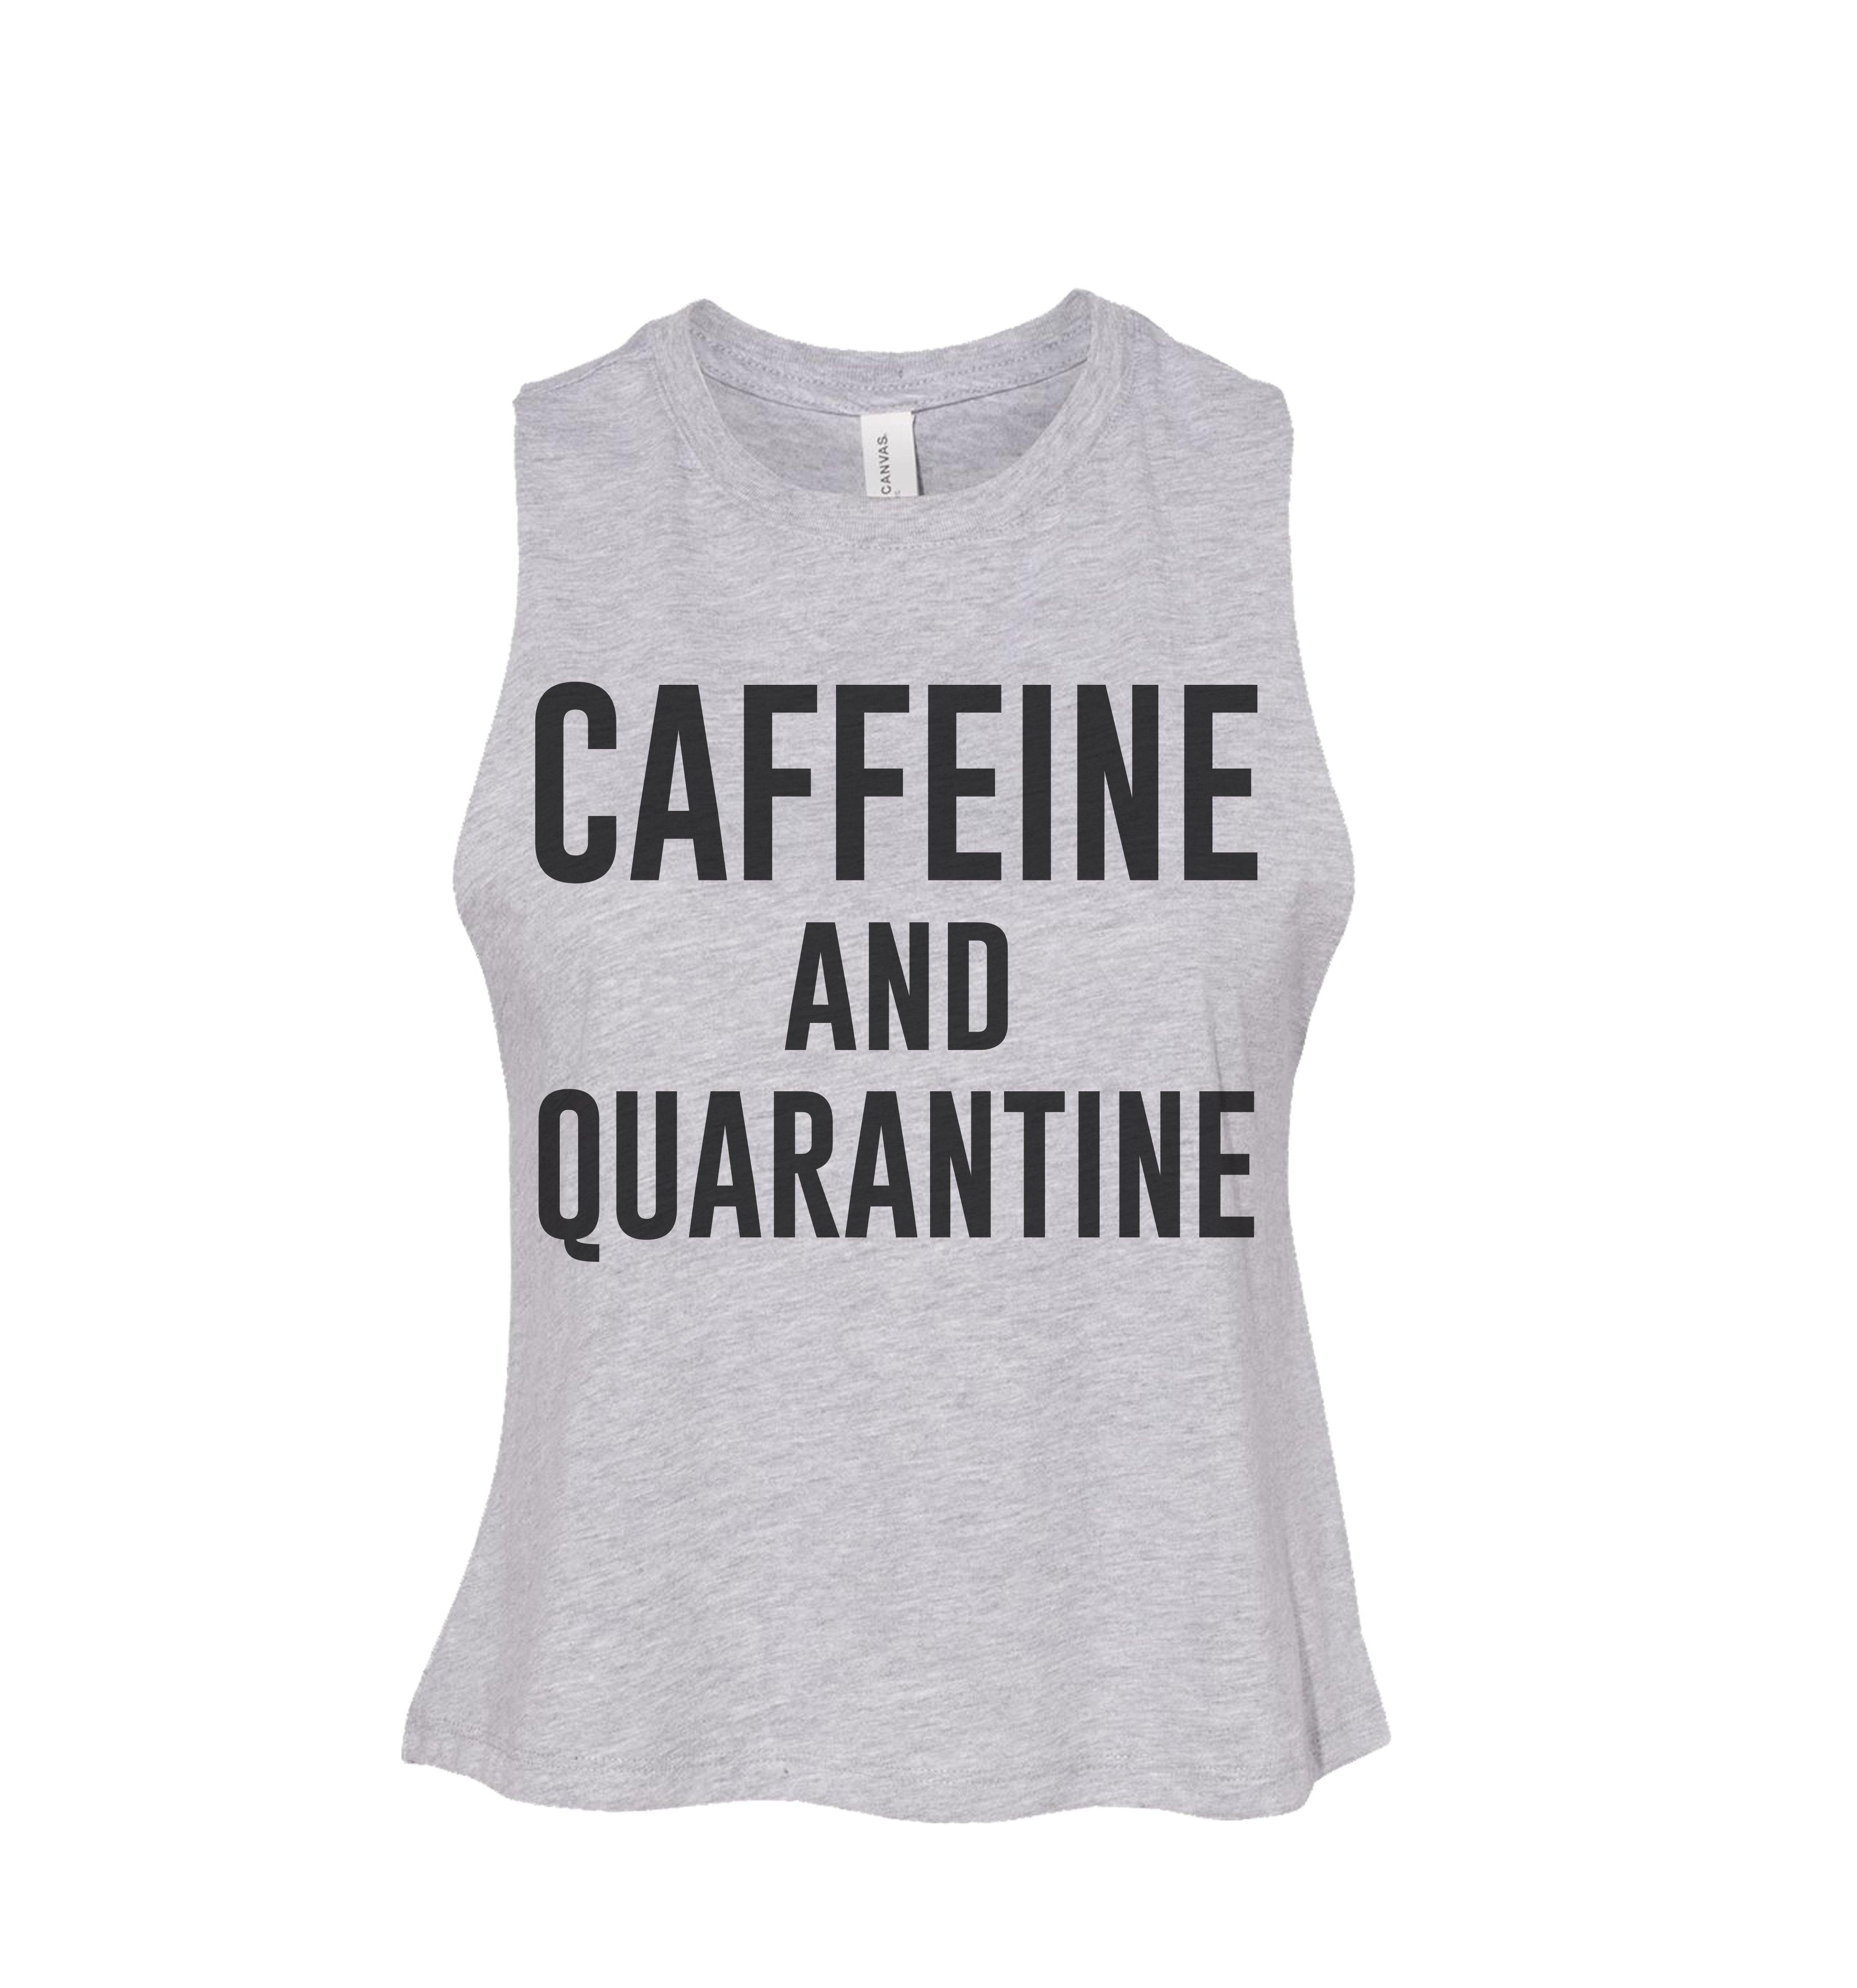 CAFFEINE AND QUARANTINE CROP RACERBACK - Shops by Green Gorilla